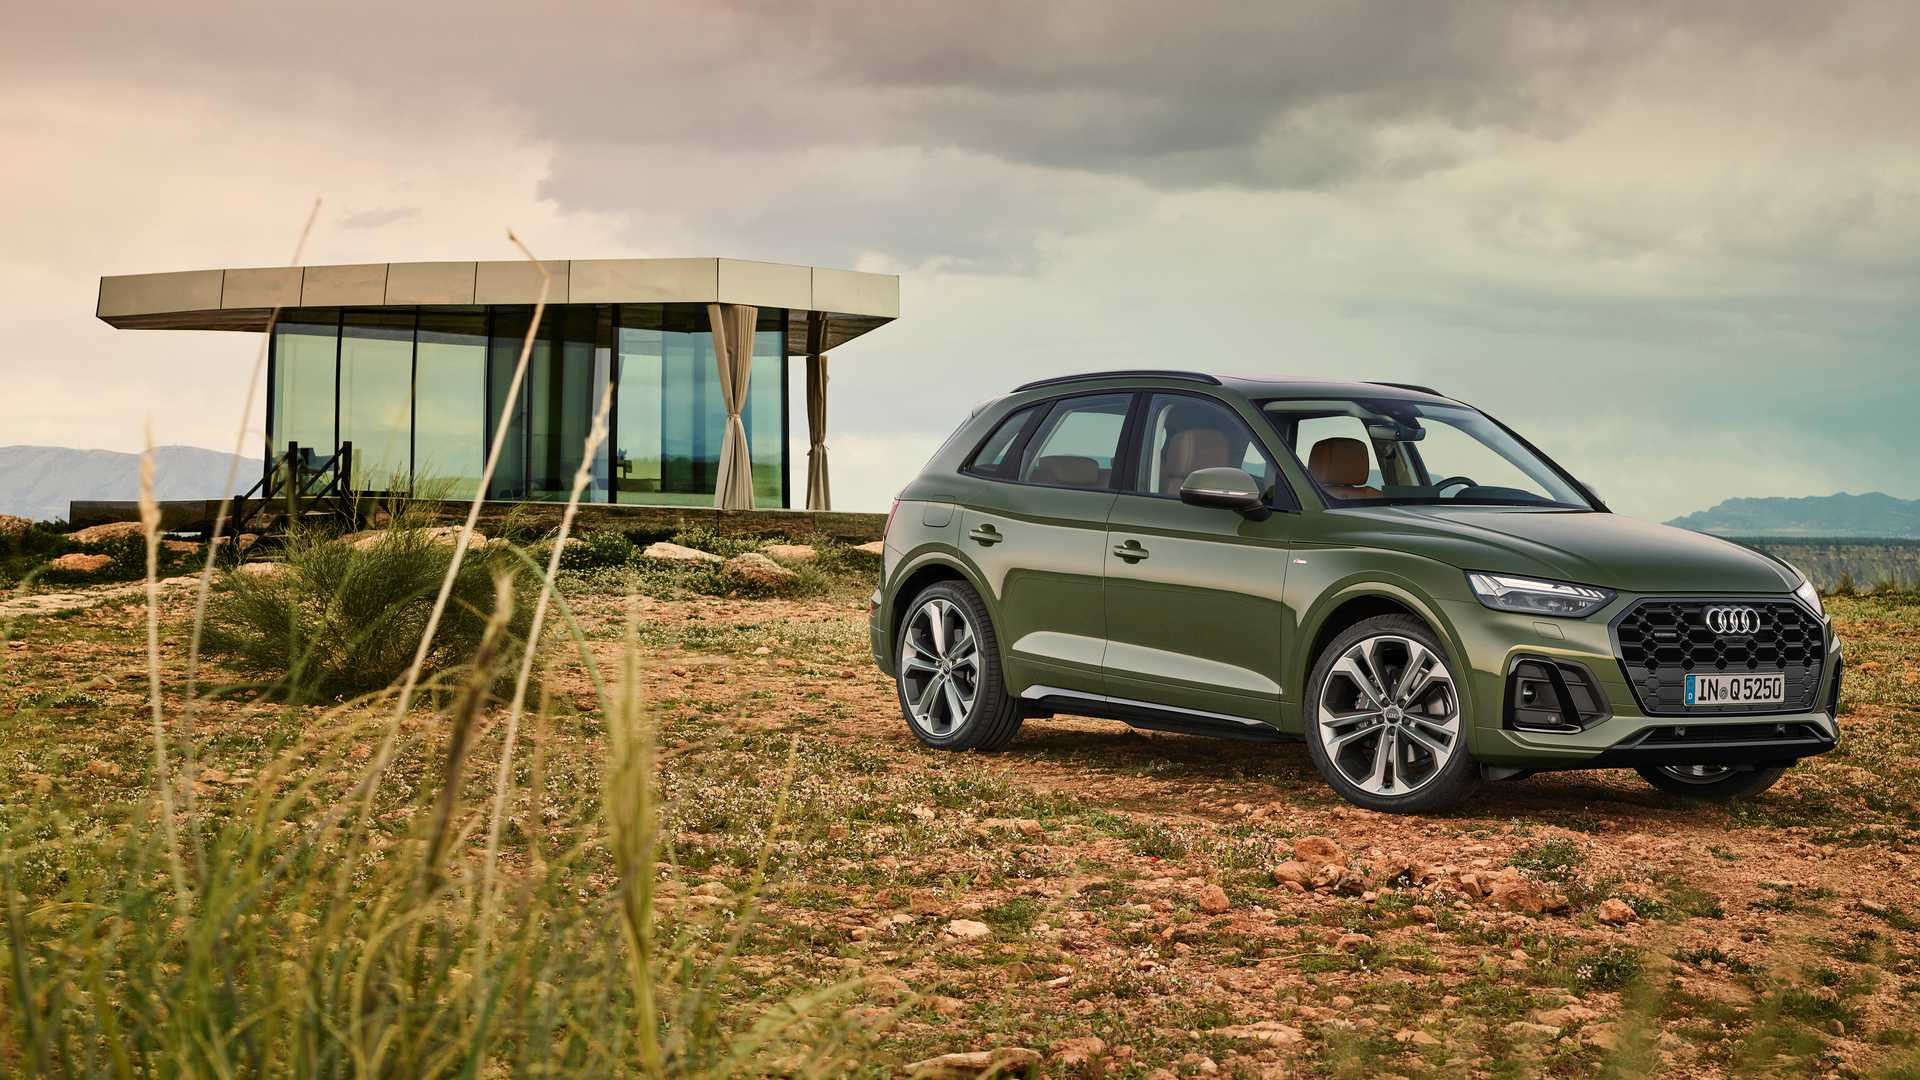 A few days after the premiere of the refreshed Audi Q5 and its performance-oriented equivalent – the SQ5 – rumors struck out yet again that a top-of-the-line RS Q5 version was also on its way to showrooms. Apparently, Audi isn't denying it, either.